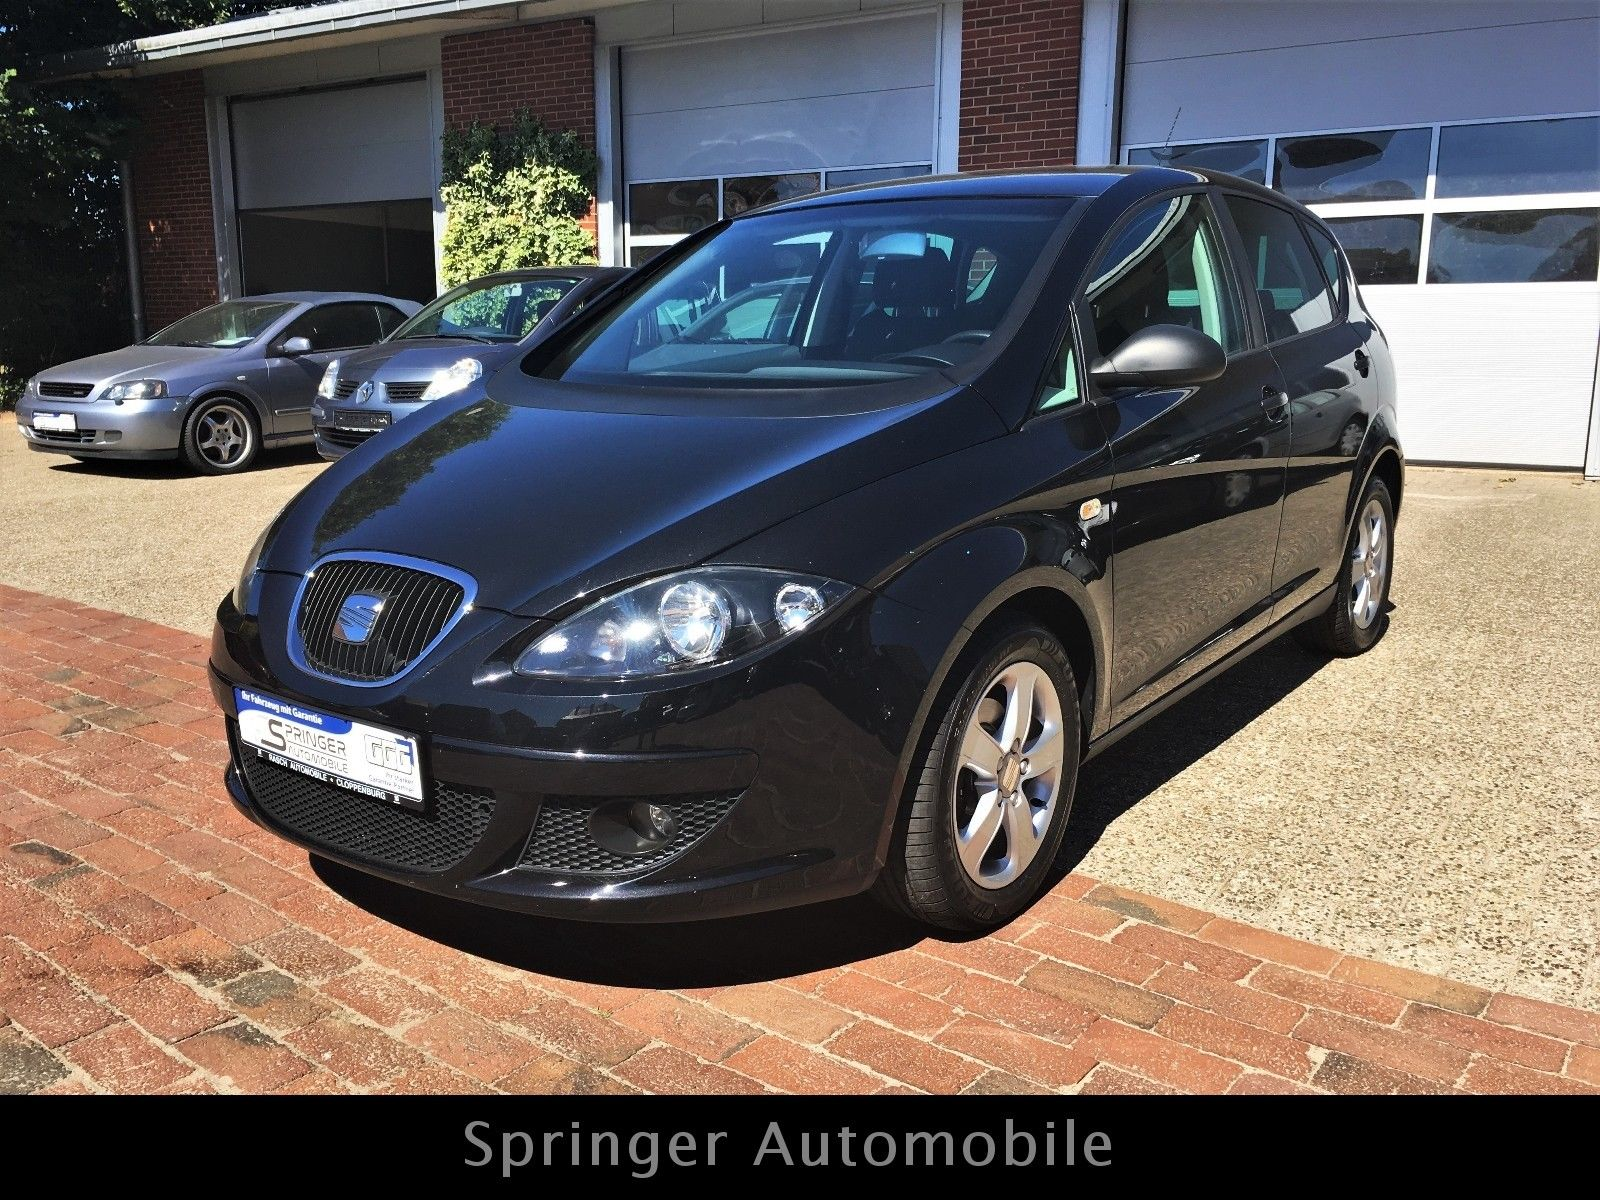 SEAT Altea 1.6 MPI Rebel